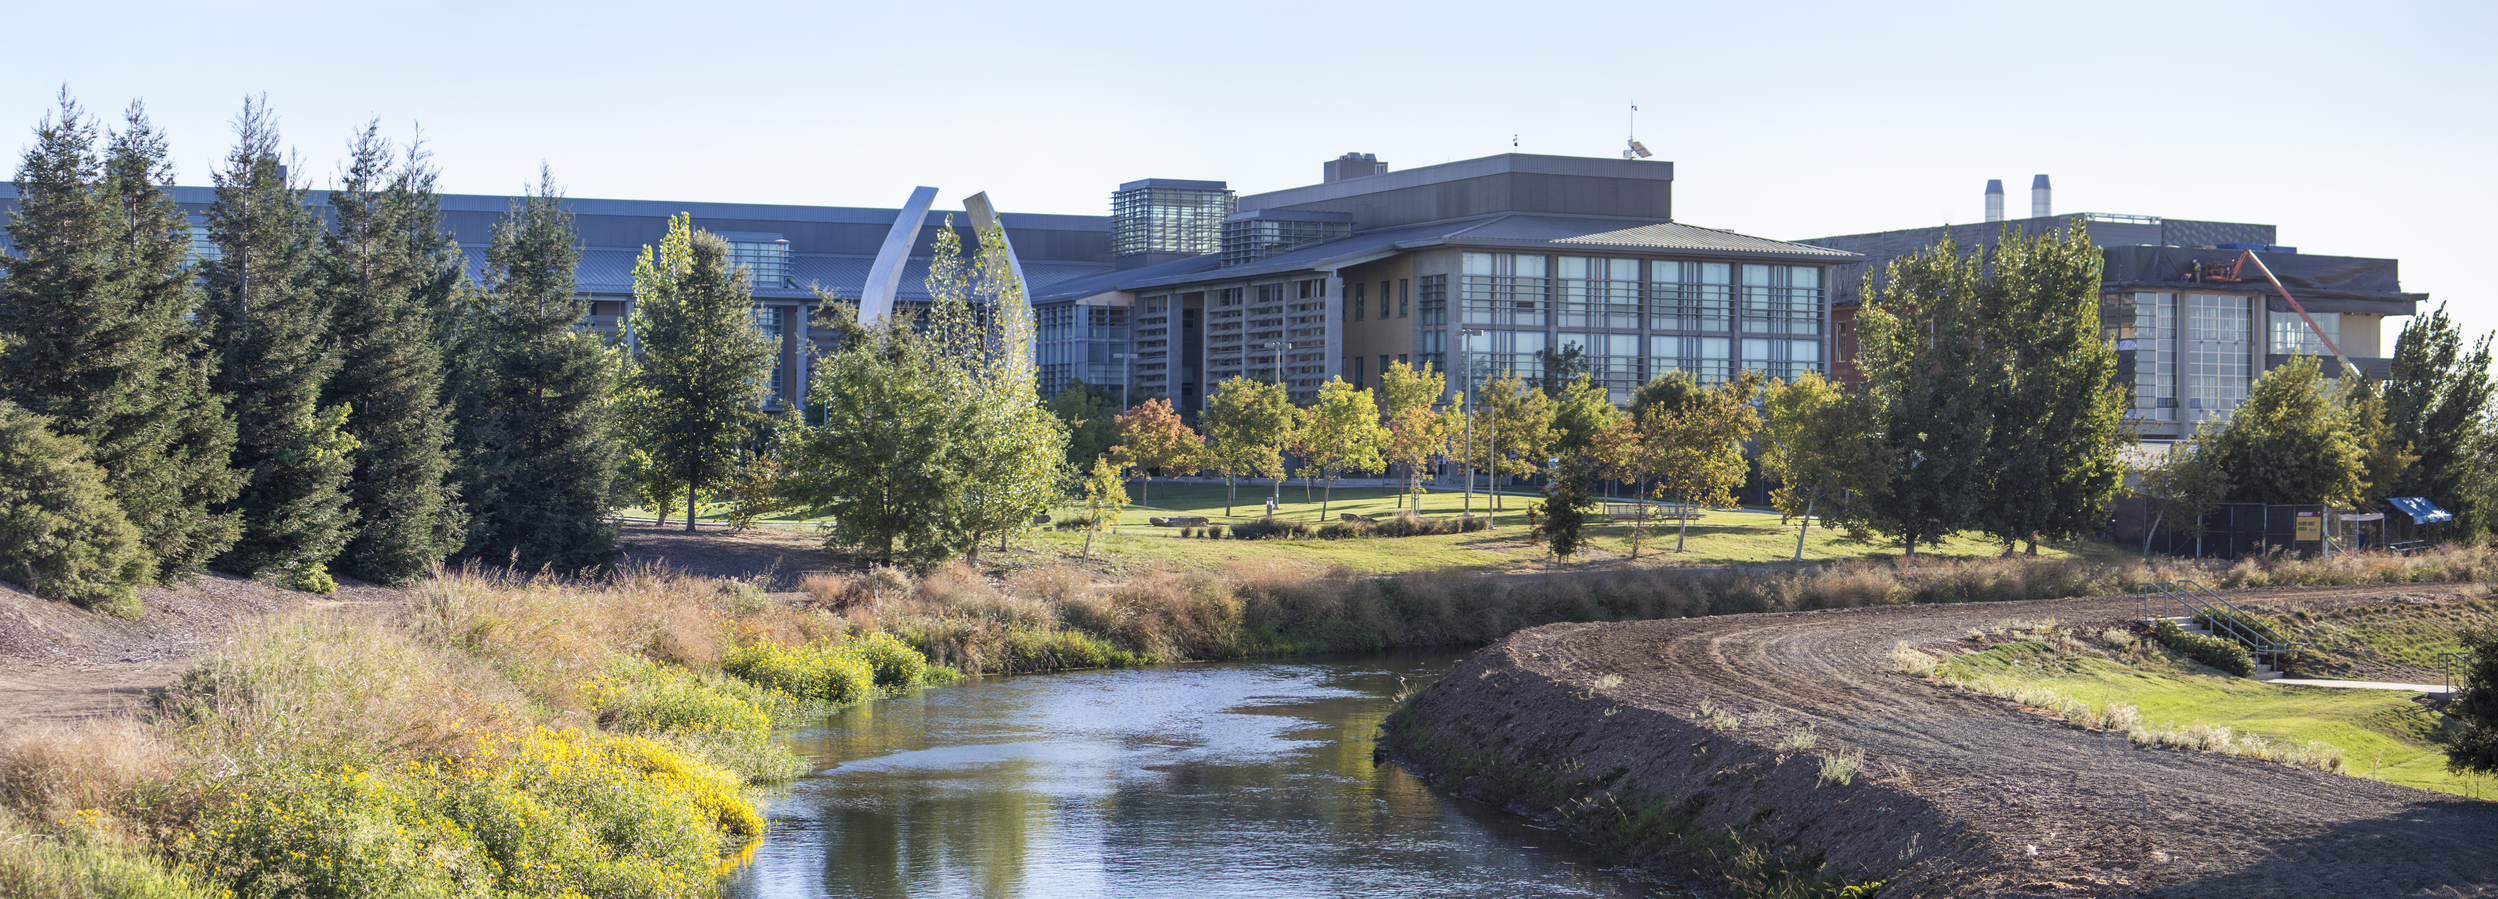 UC Merced's campus